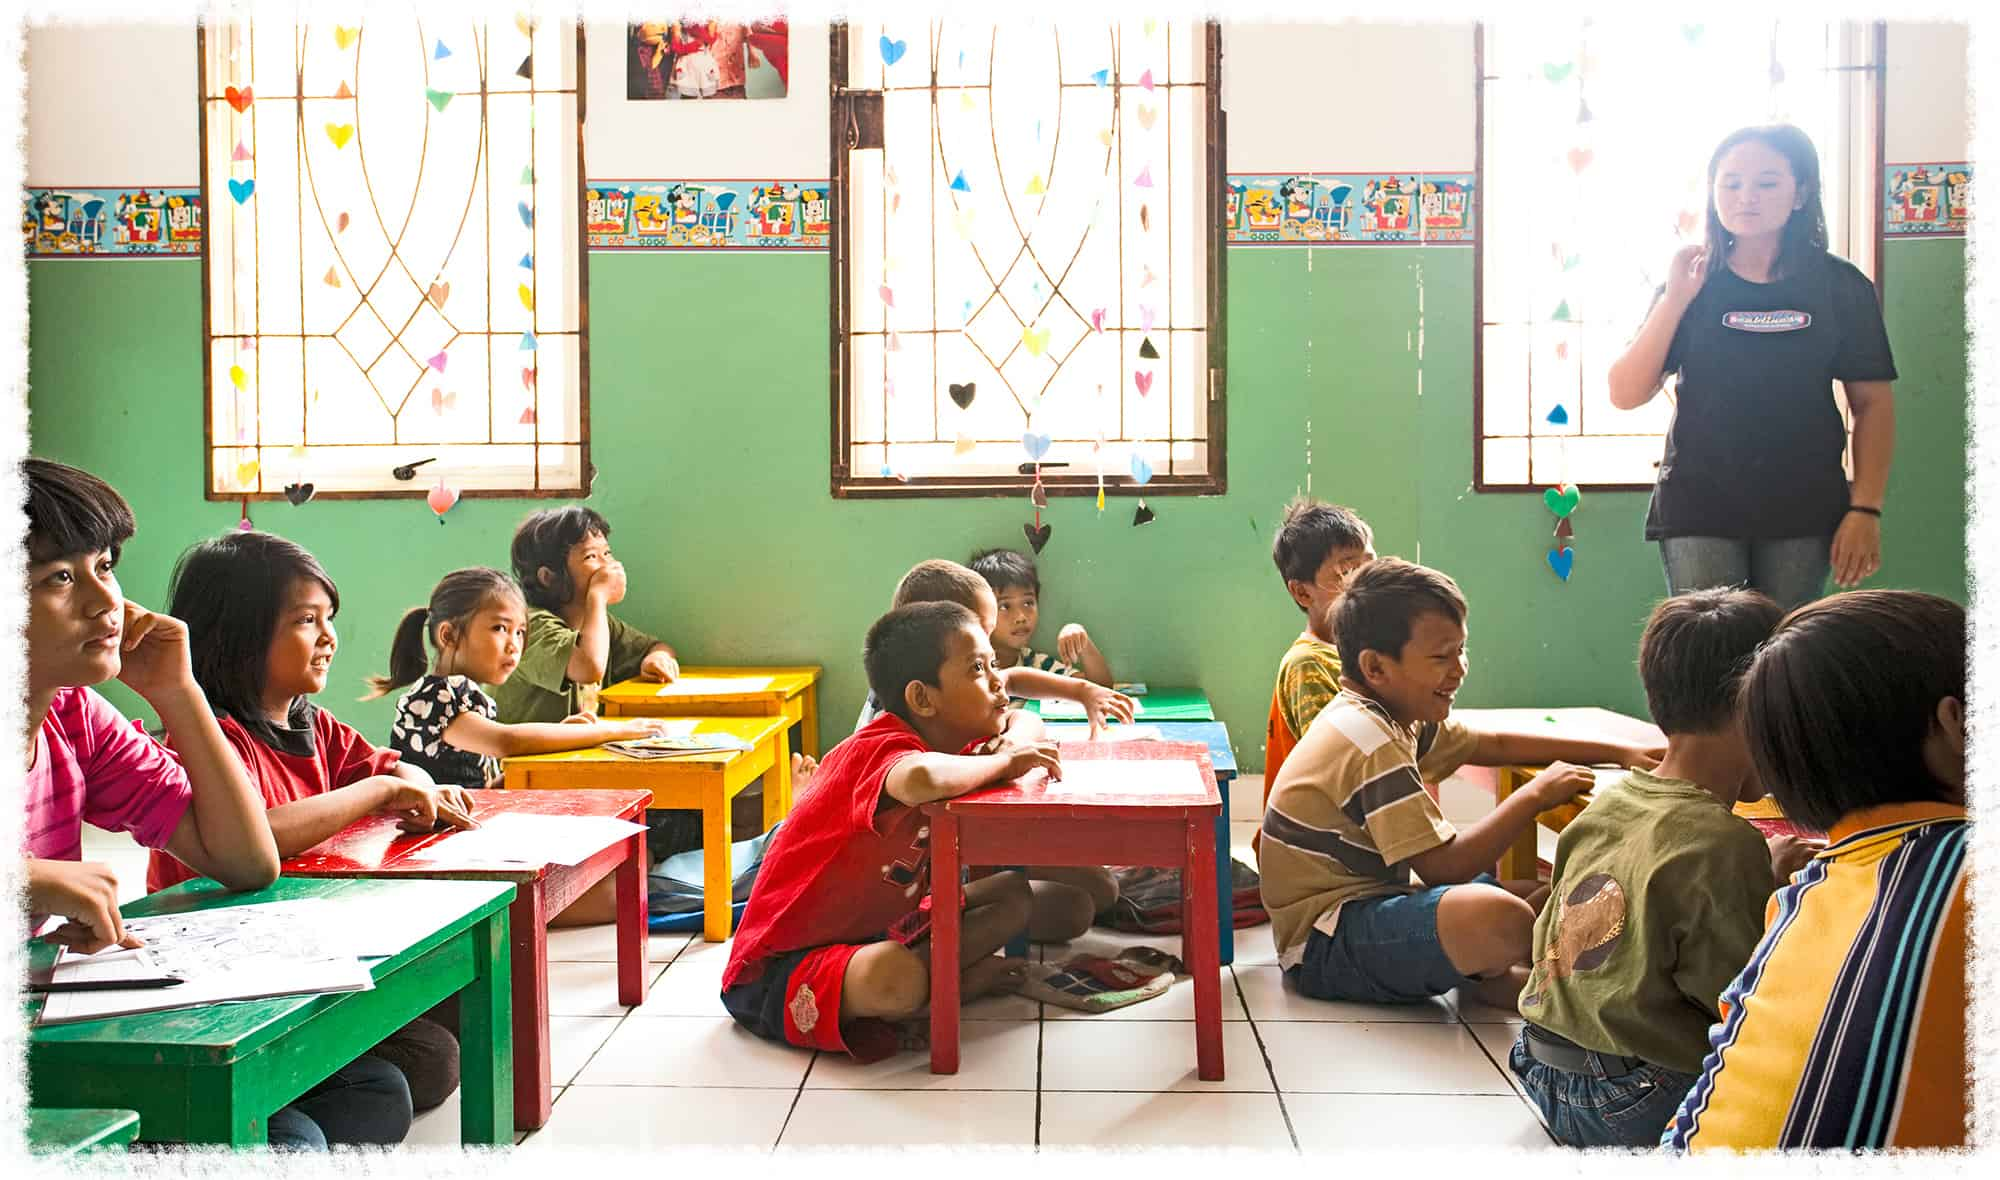 Students listen to their teacher in their classroom in Indonesia.